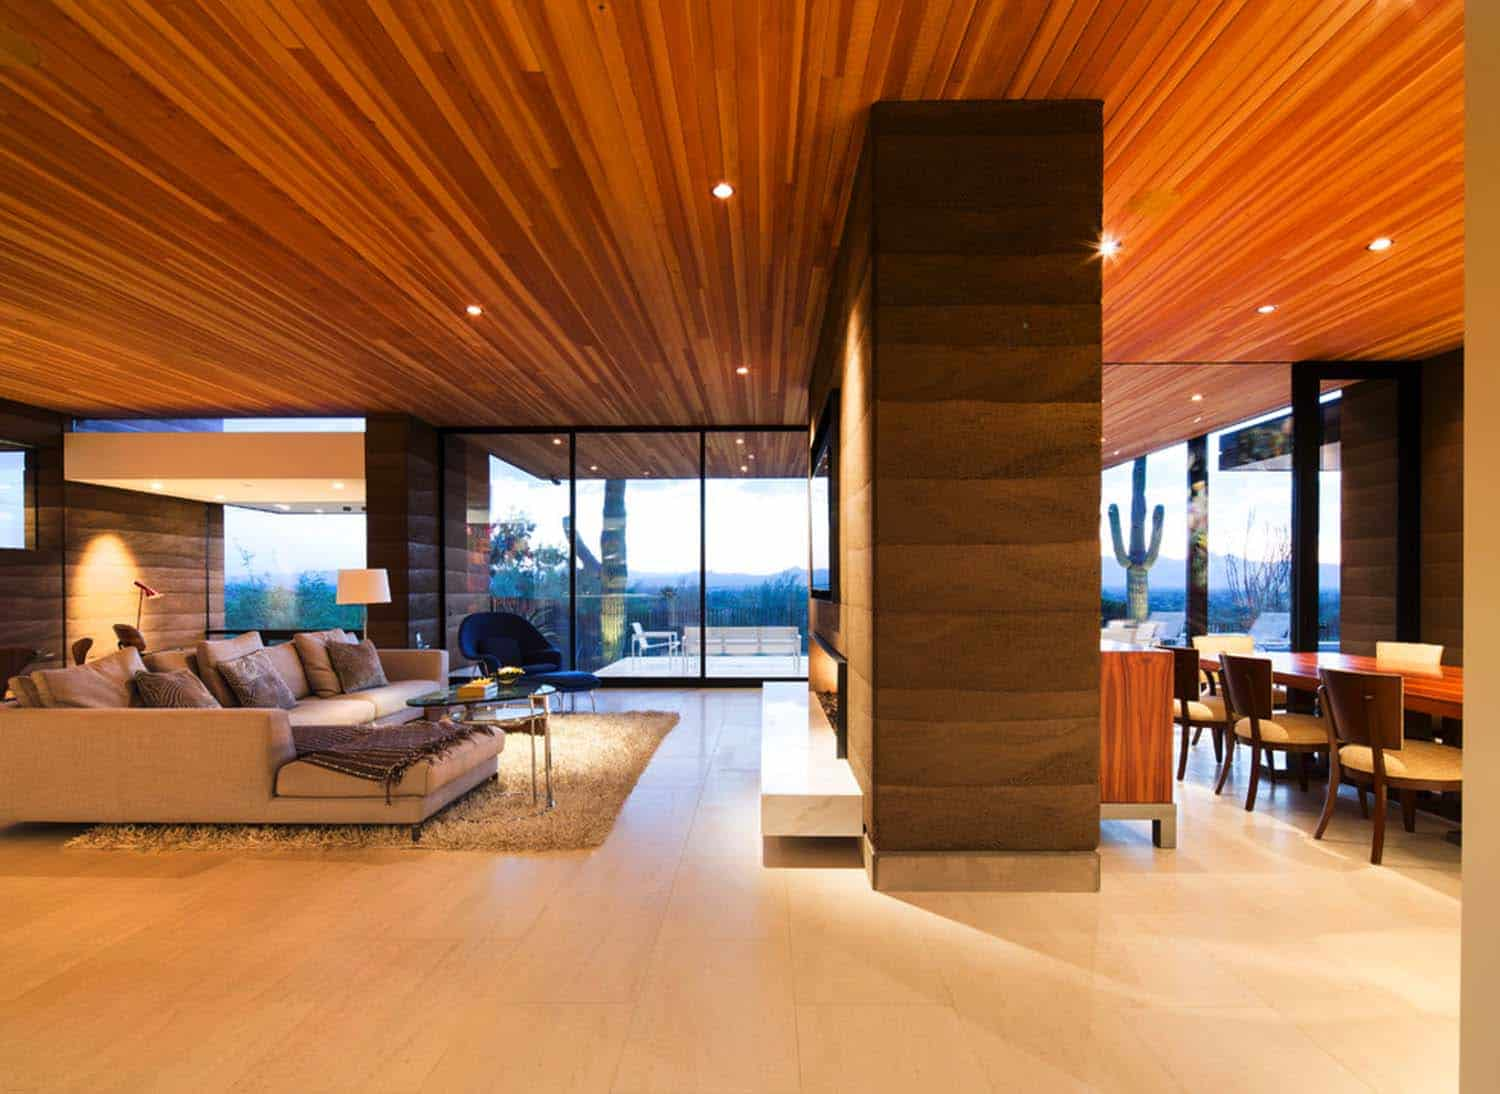 Modern Rammed Earth Home-Kendle Design-06-1 Kindesign